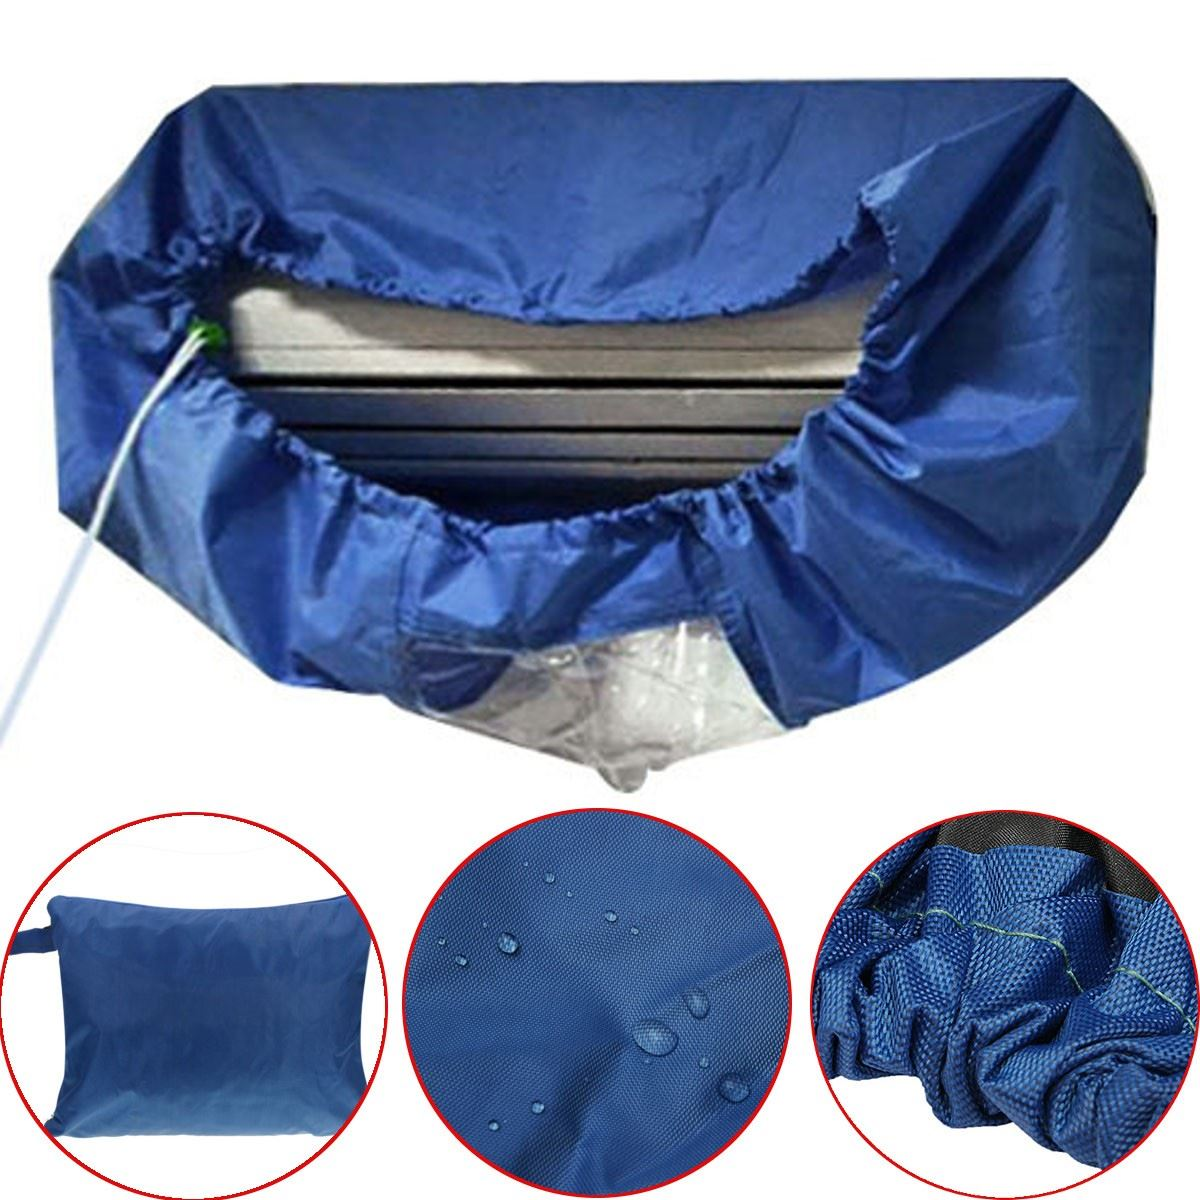 Air Conditioner Waterproof Cleaning Cover For Diy Washing